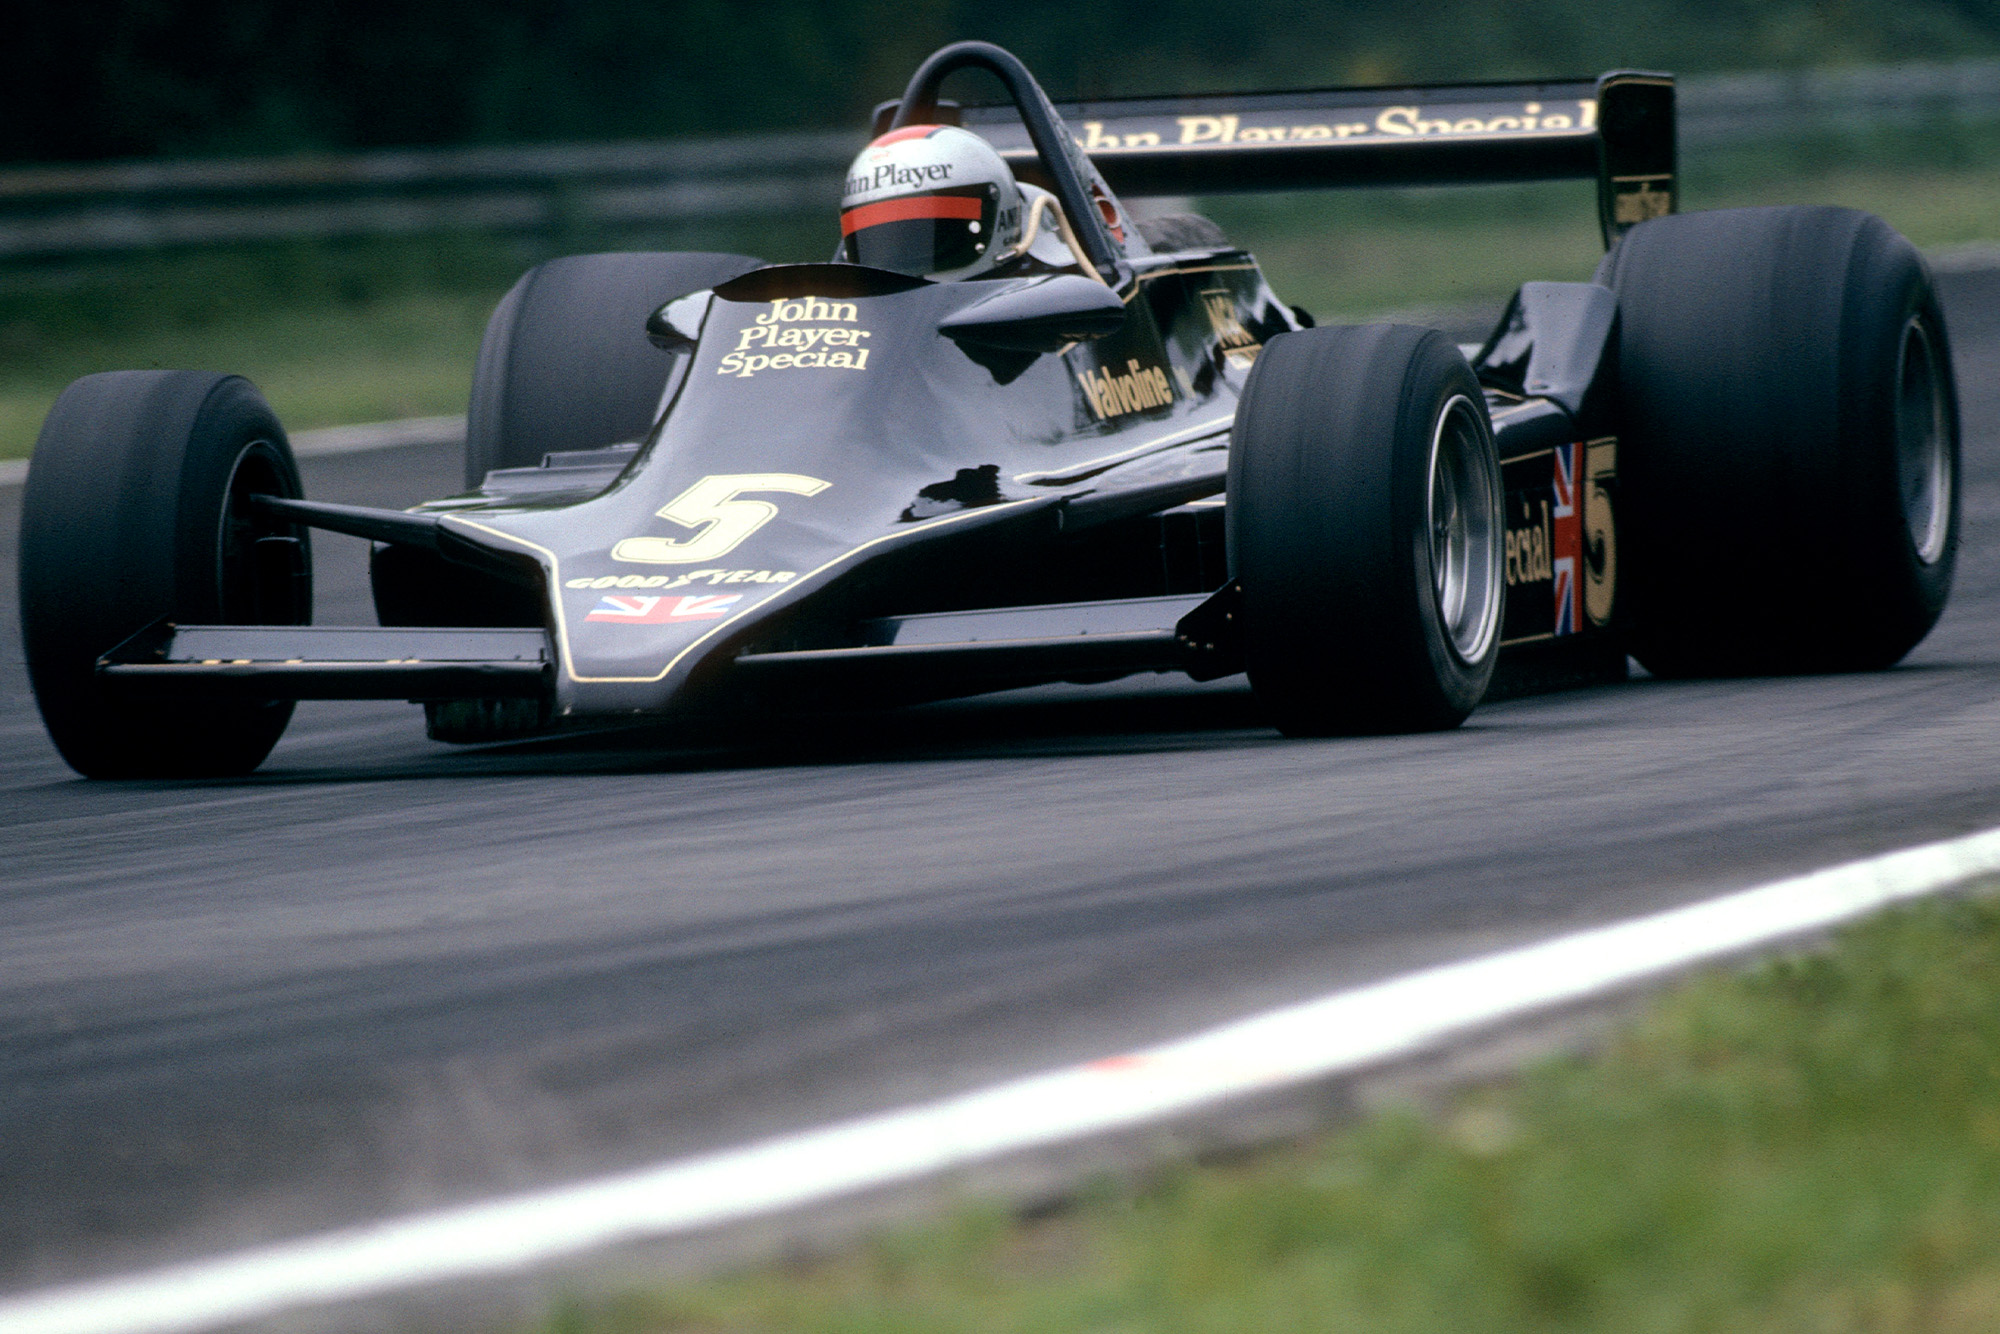 Mario Andretti in the Lotus 79 during the 1978 Belgian Grand Prix at Zolder